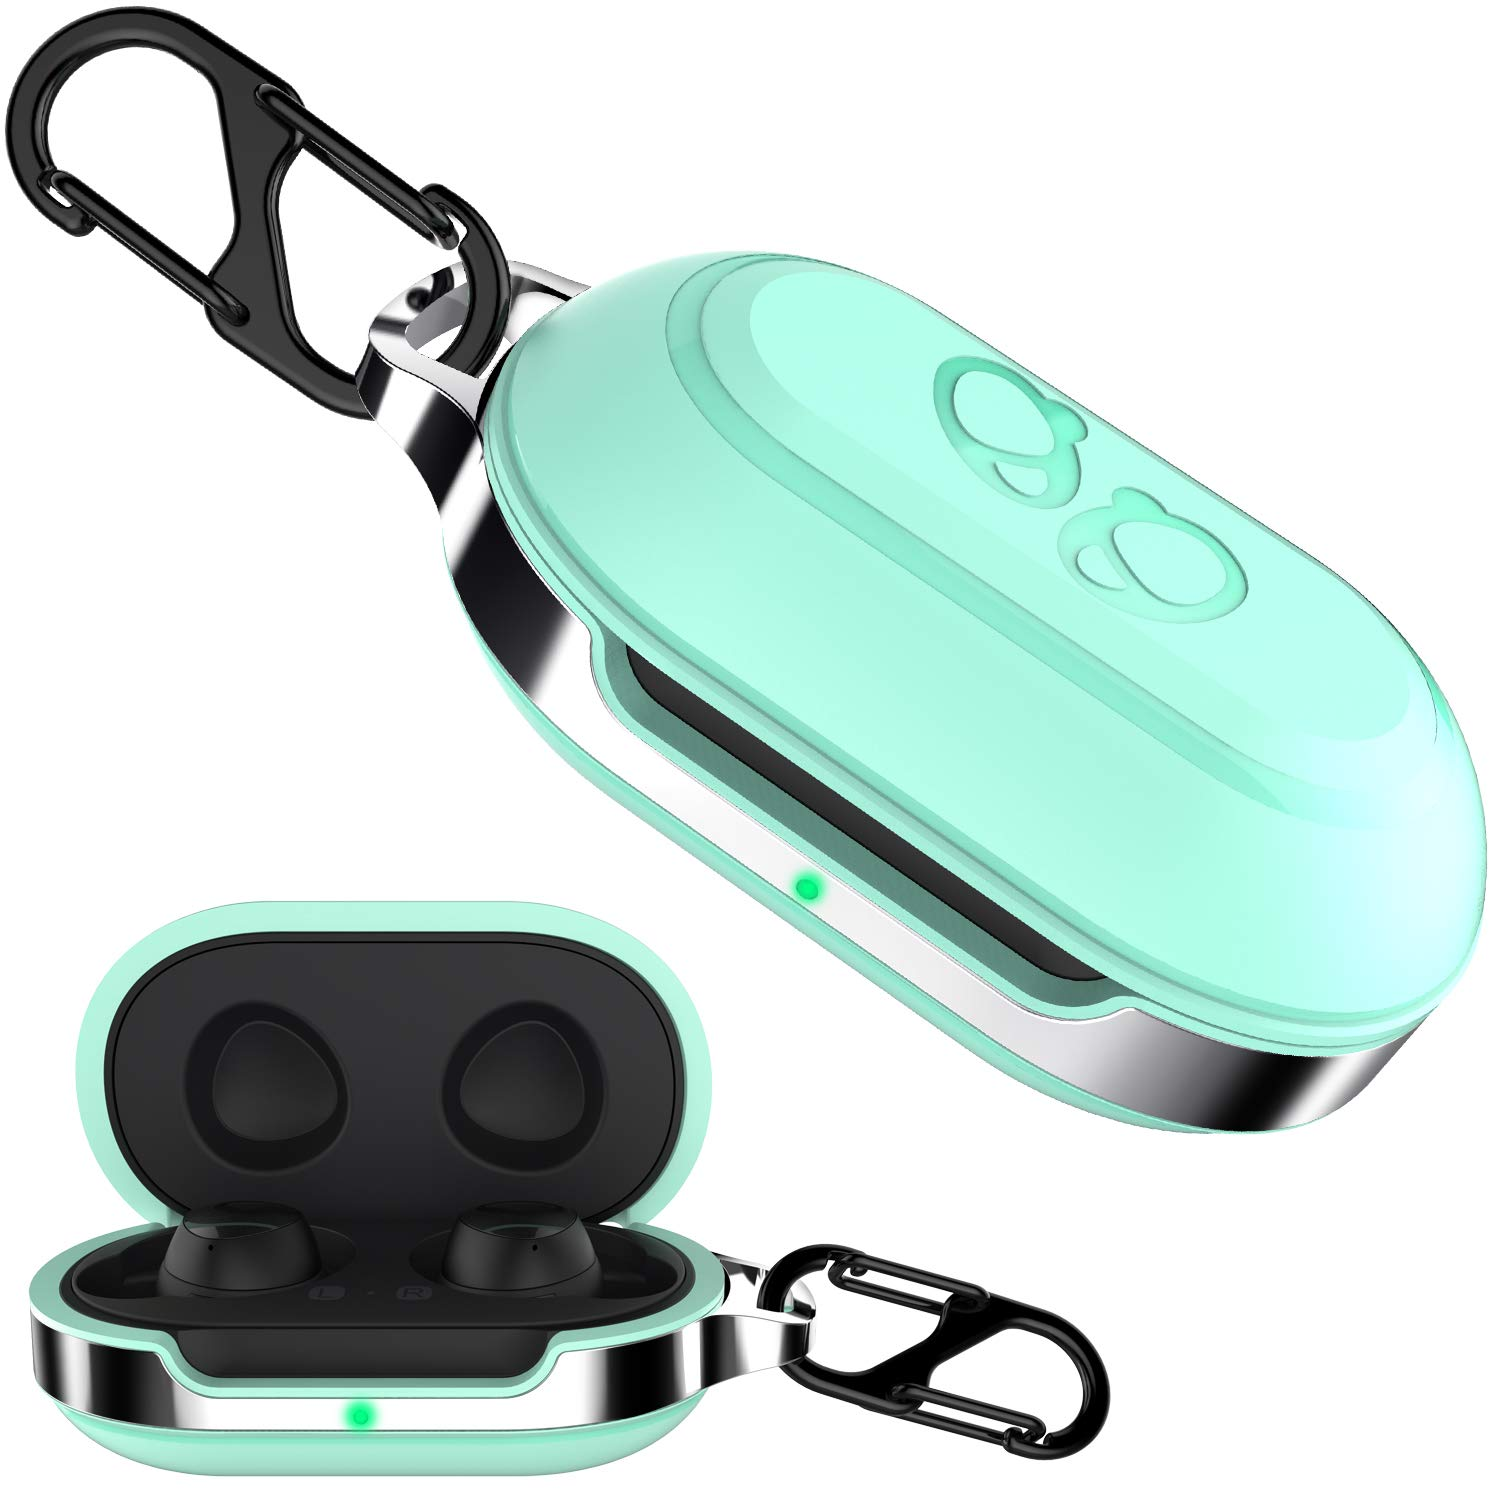 Amazon Com Halleast Galaxy Buds Case Cover Tpu Hard Protective Earbuds Case For 2019 2020 Samsung Galaxy Buds Plus Case Support Wireless Charging Mint Green Electronics Case for samsung galaxy note 20 ultra / galaxy note20 ultra 5g 0 review cod. halleast galaxy buds case cover tpu hard protective earbuds case for 2019 2020 samsung galaxy buds plus case support wireless charging mint